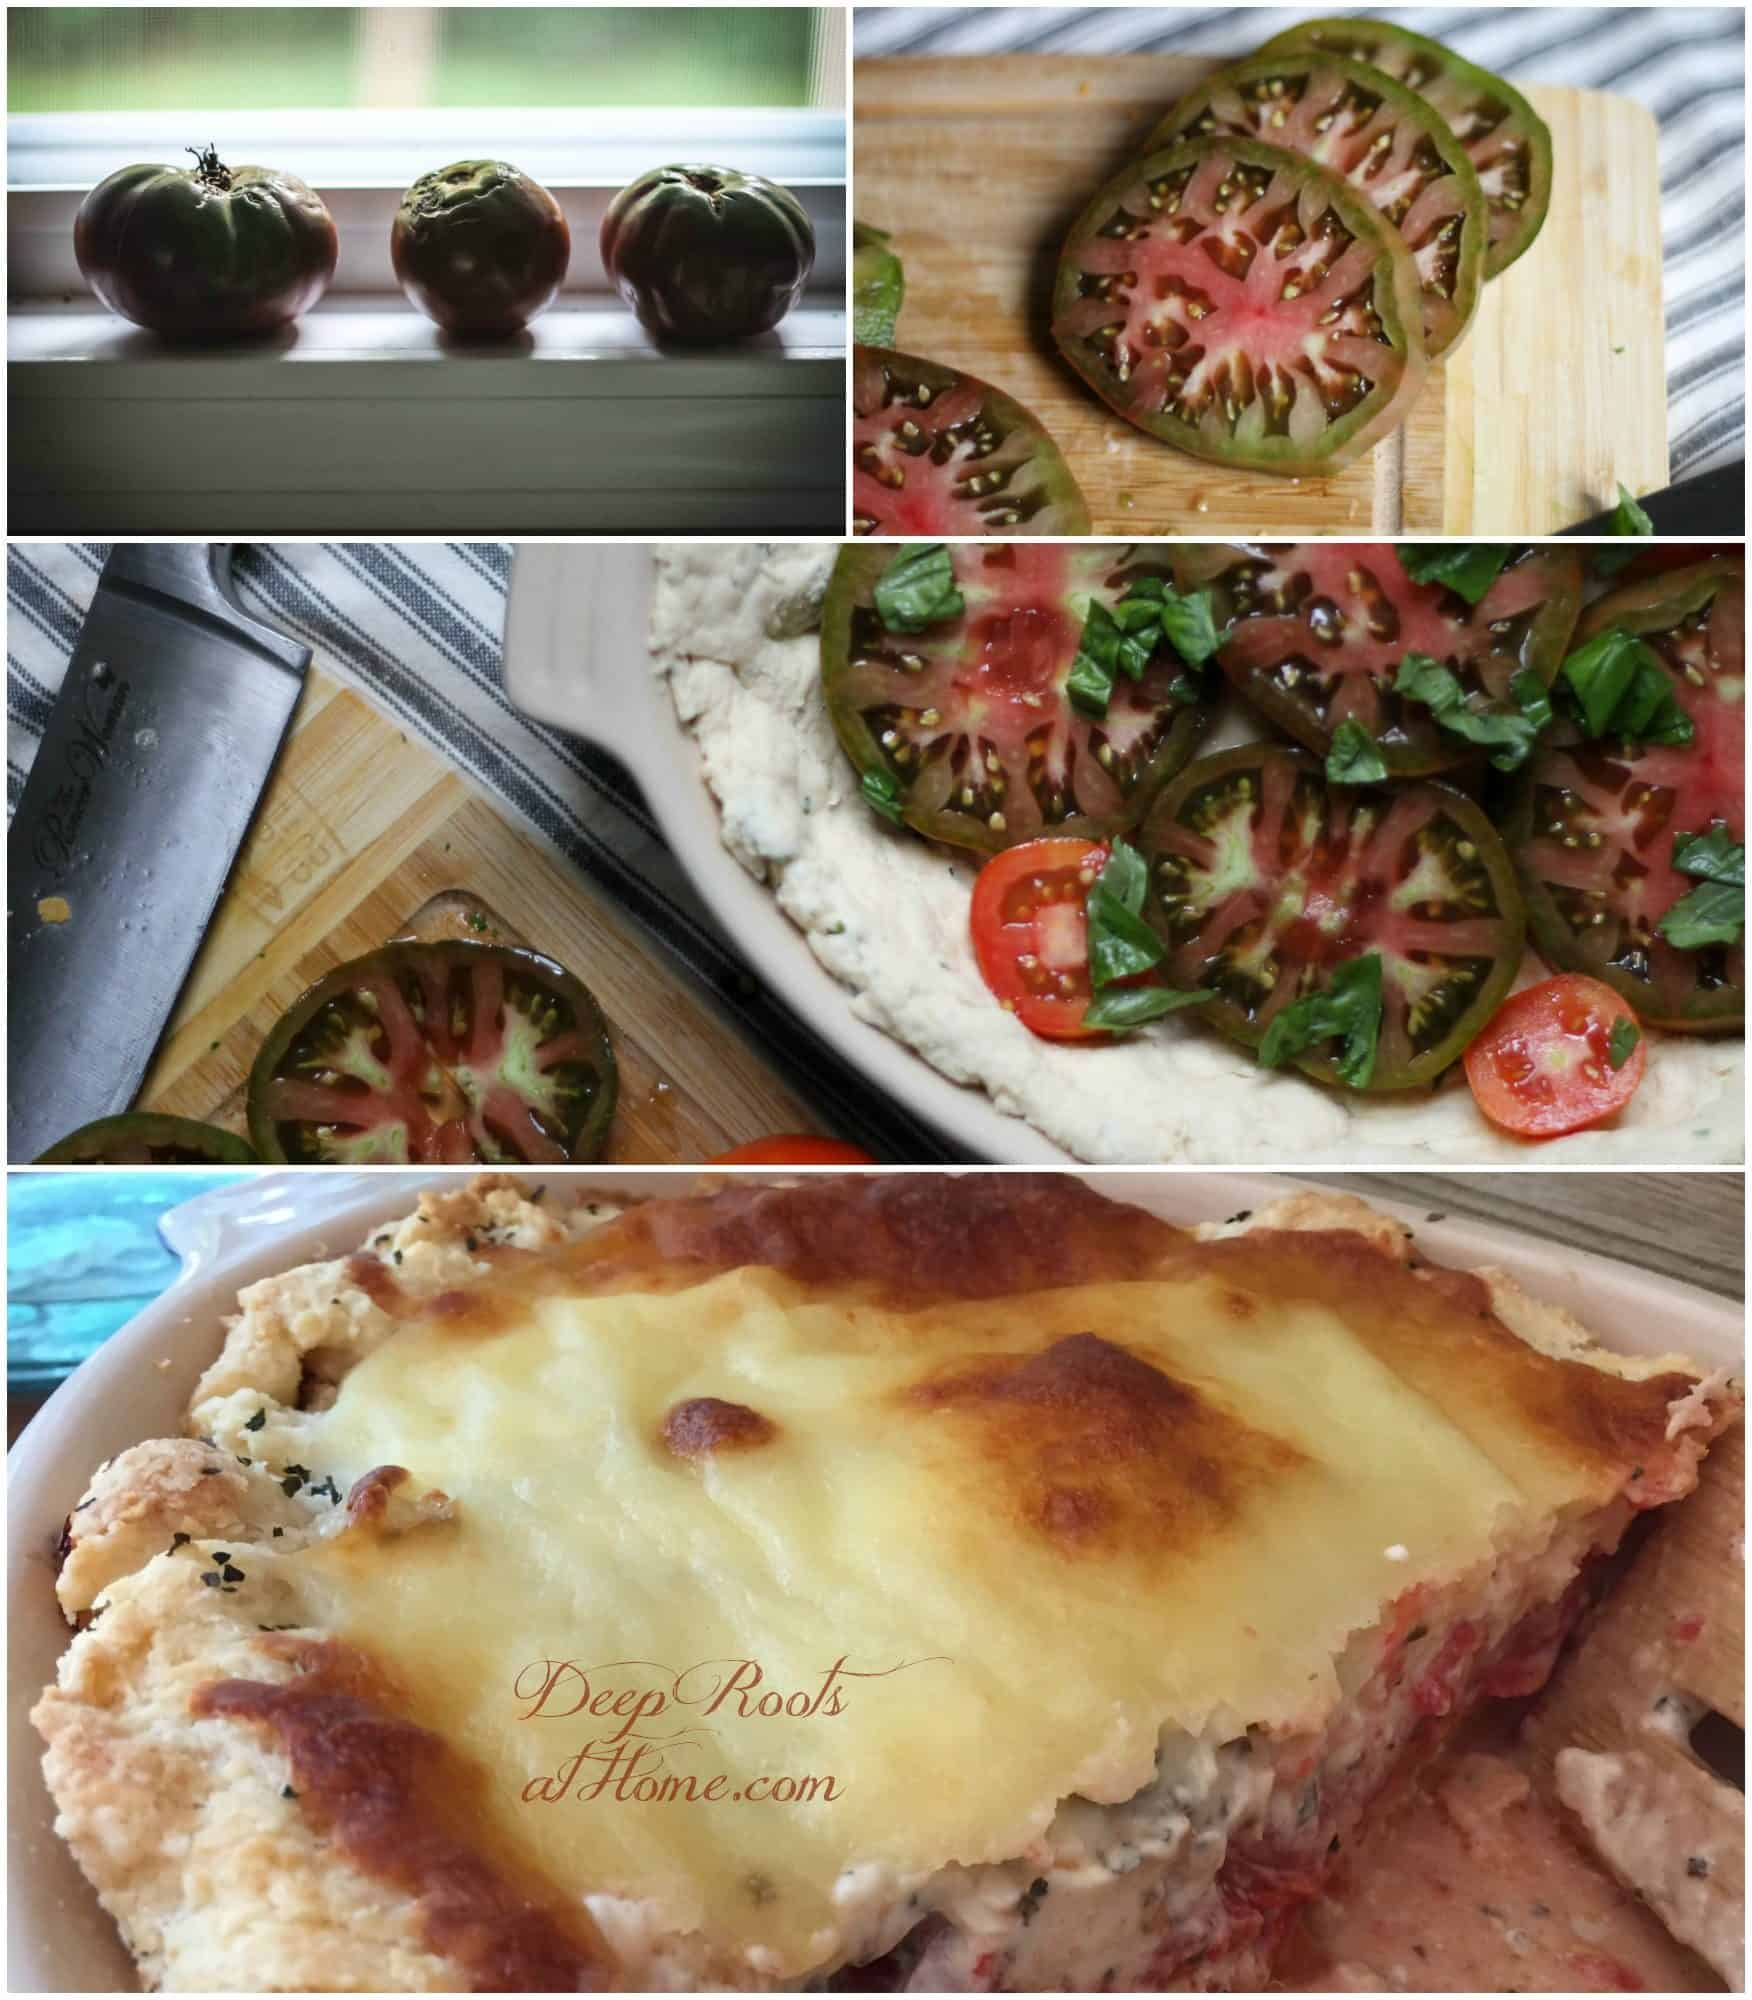 Olivia's Tomato Pie: Savory, Cheesy Summertime Favorite. A collage of steps taken to make this colorful summertime tomato pie.